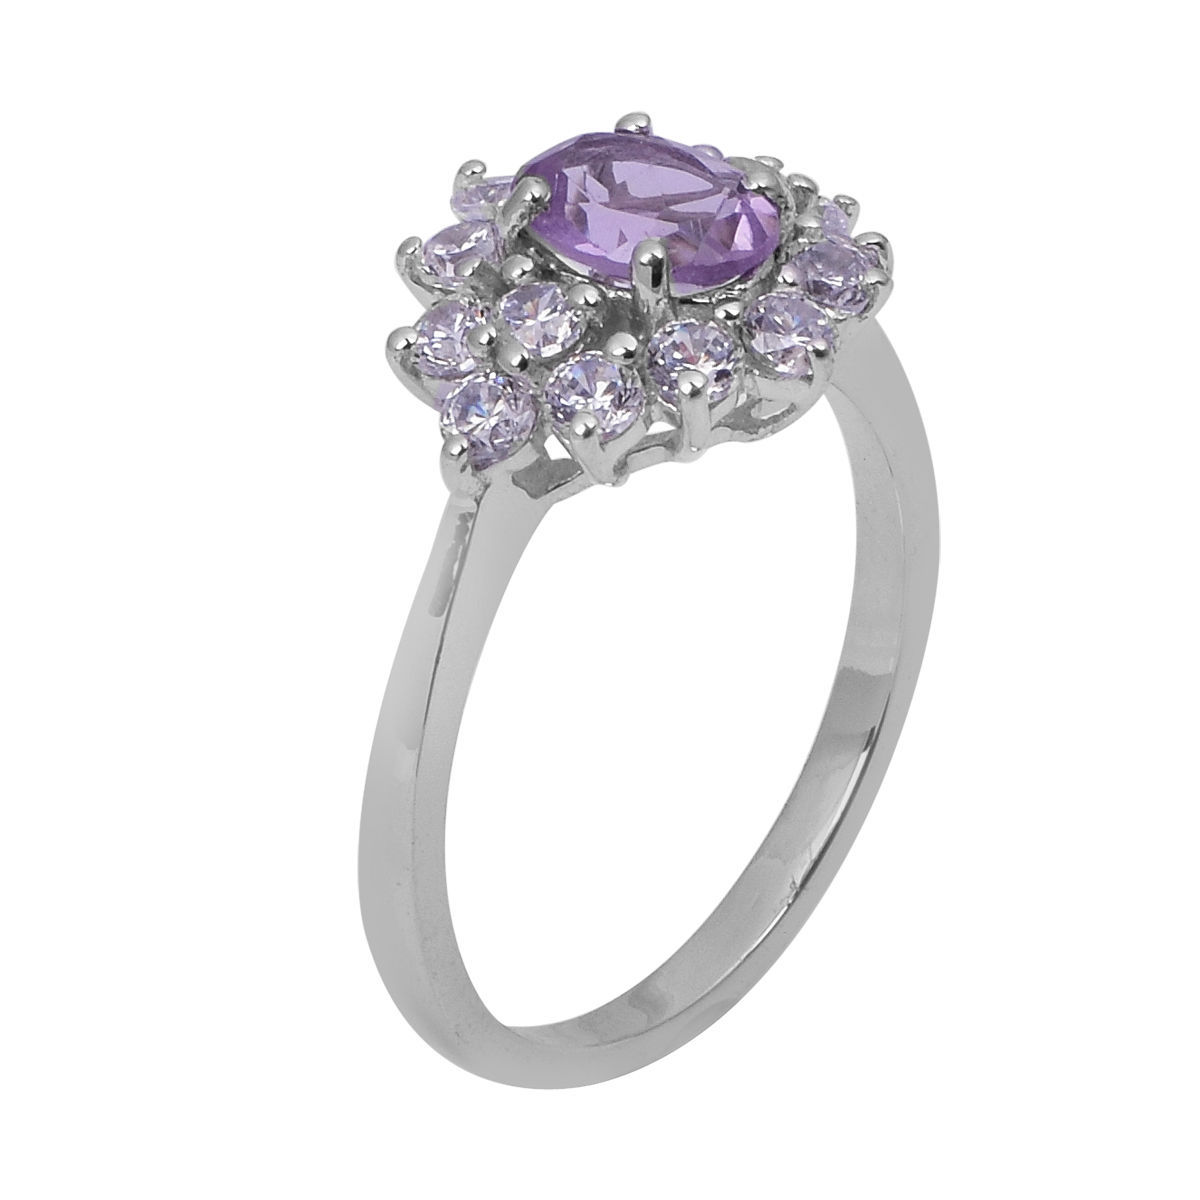 Flower Amethyst And White Topaz 925 Sterling Silver Jewelry Ring Sz 7 SHRI0761